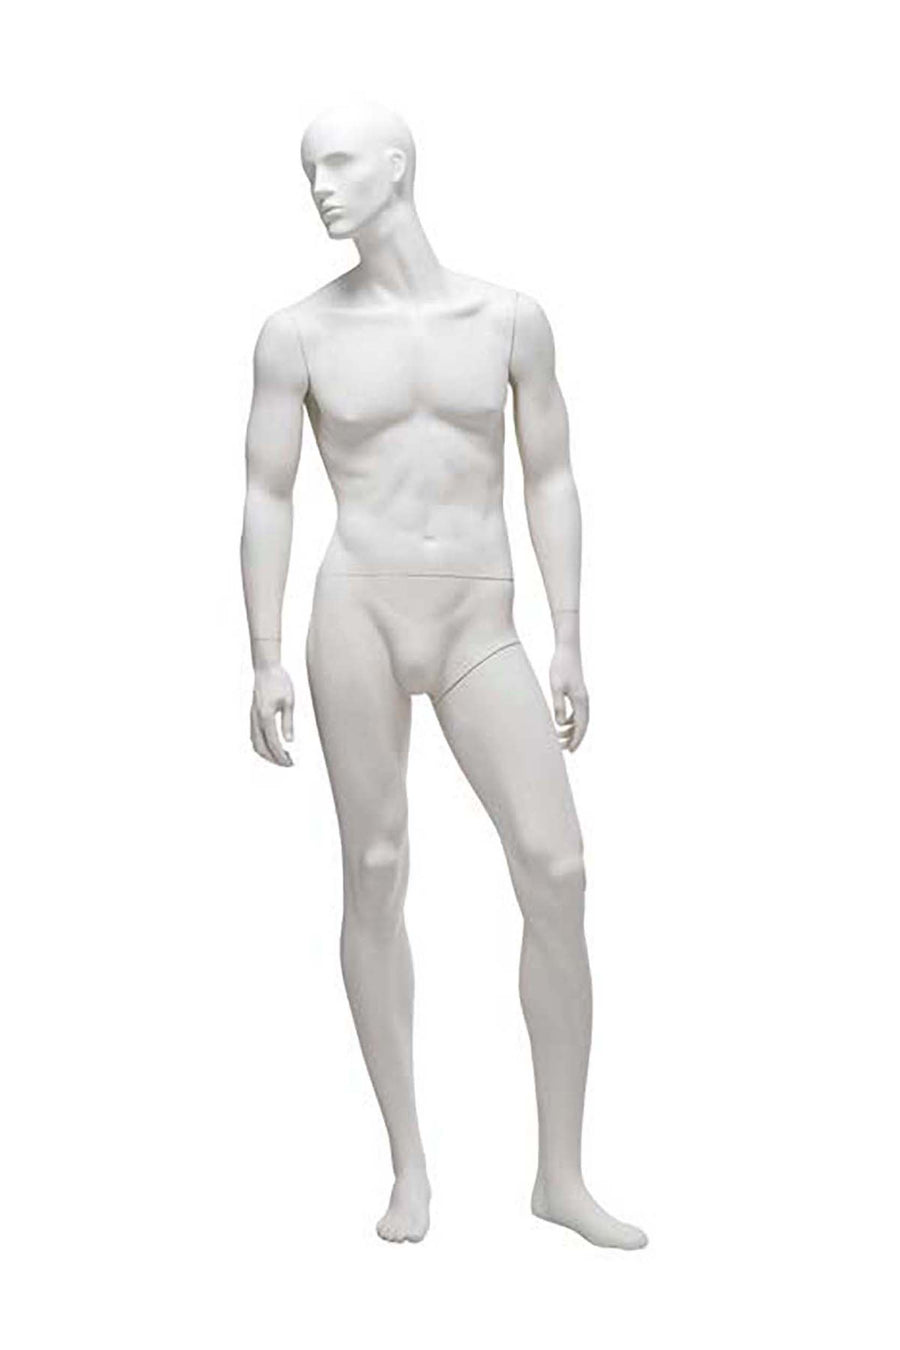 pure white male mannequin with head turned right and relaxed arms and legs